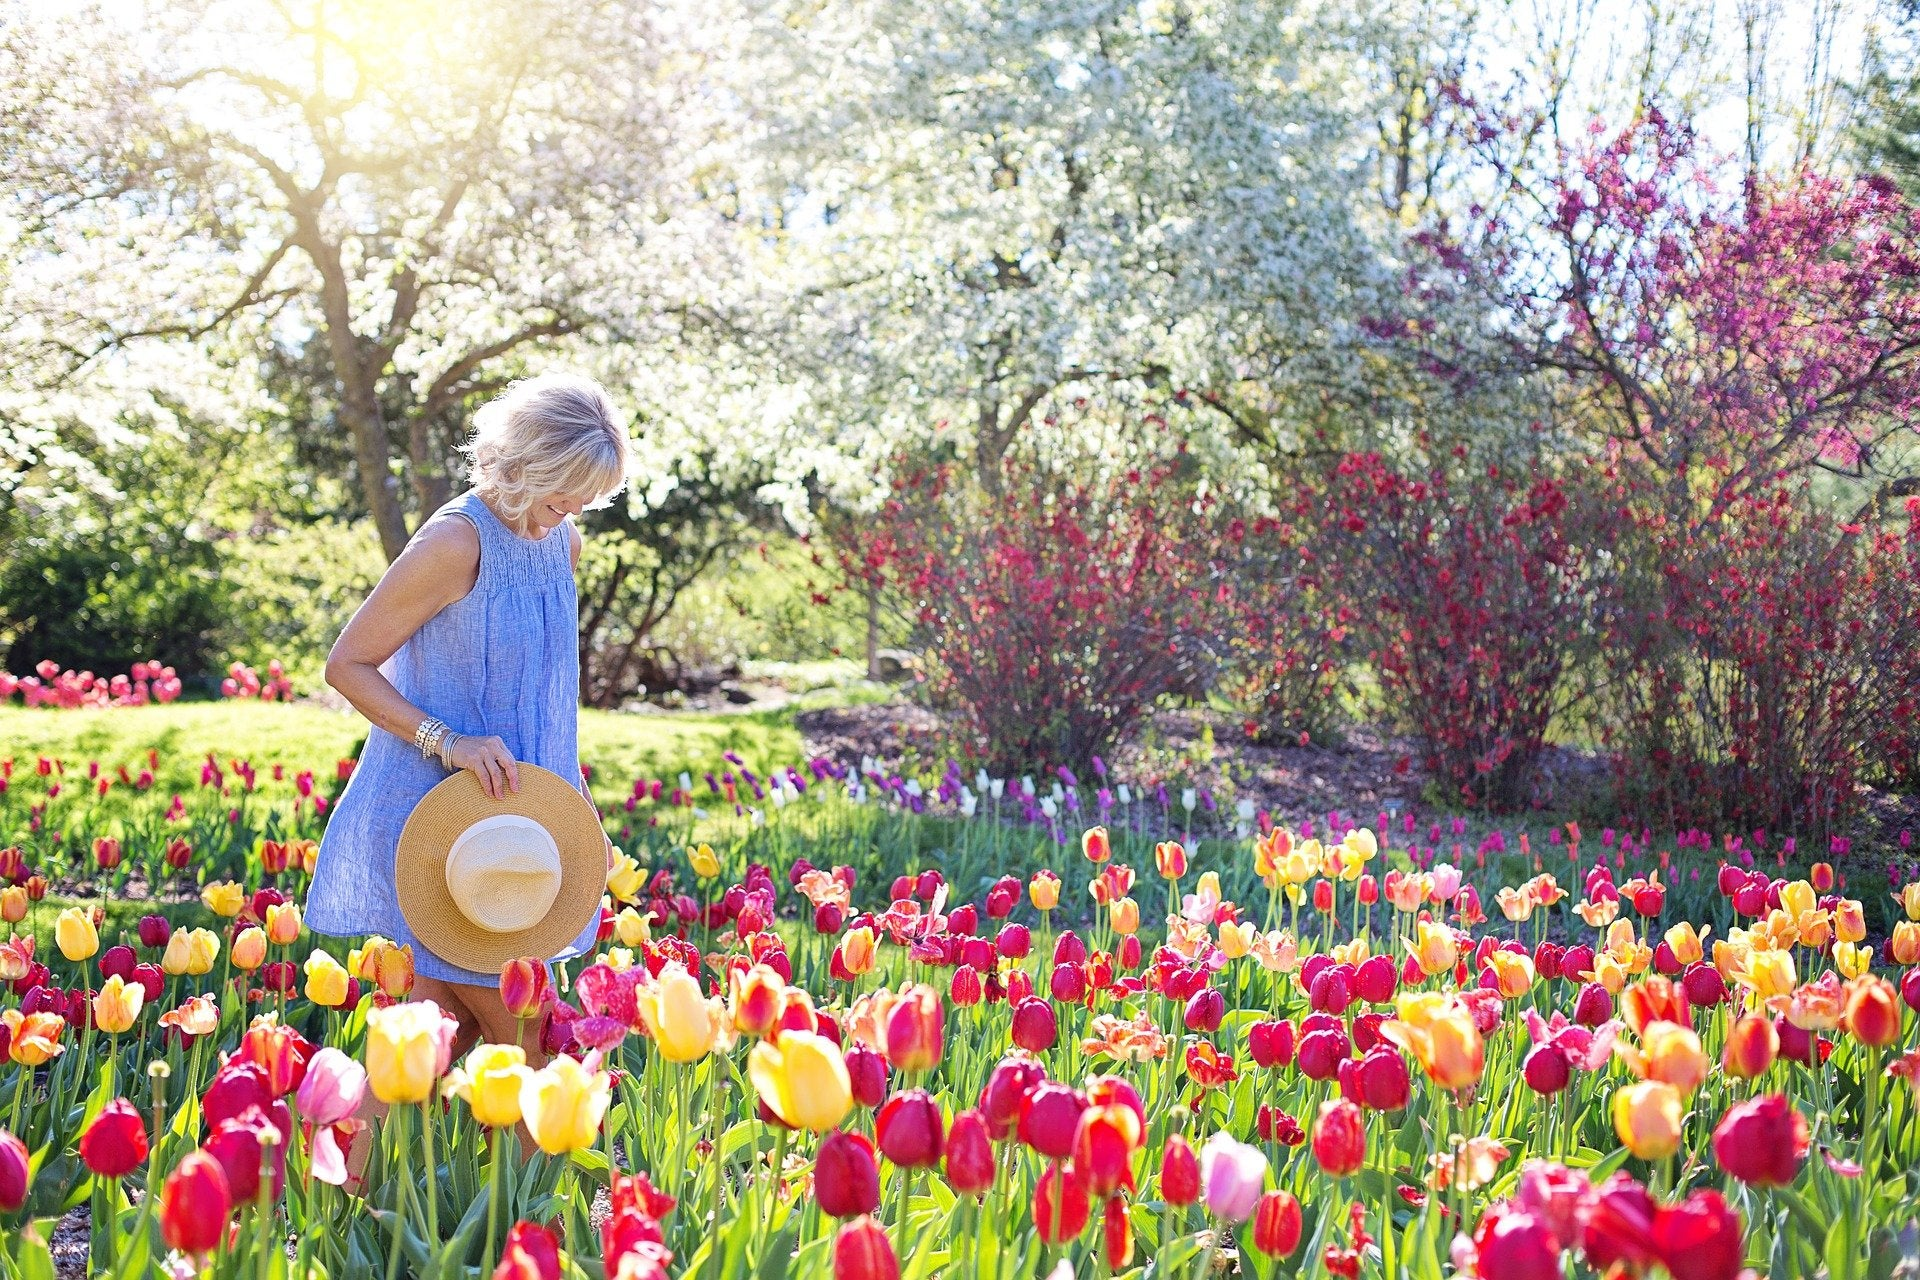 Best gifts for Mom. Woman walking through a field of flowers with a straw hat.